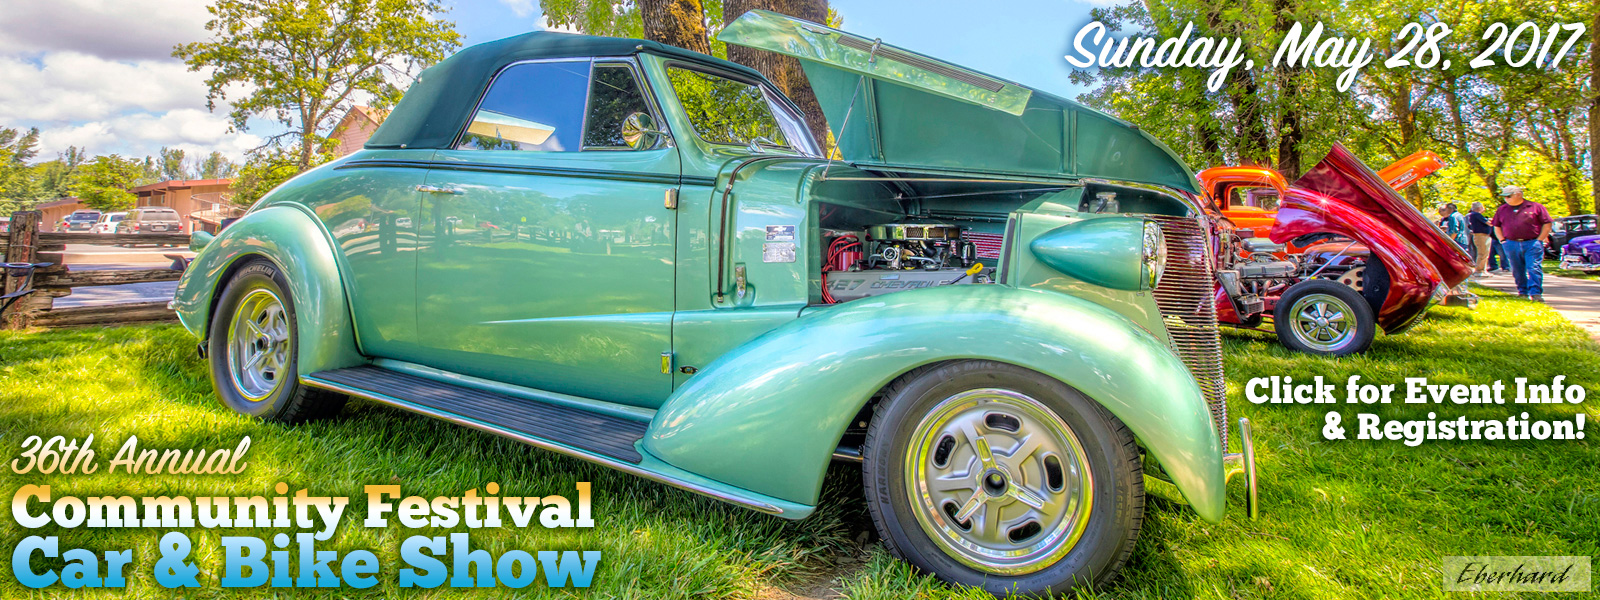 36th Annual Community Festival - Car & Bike Show